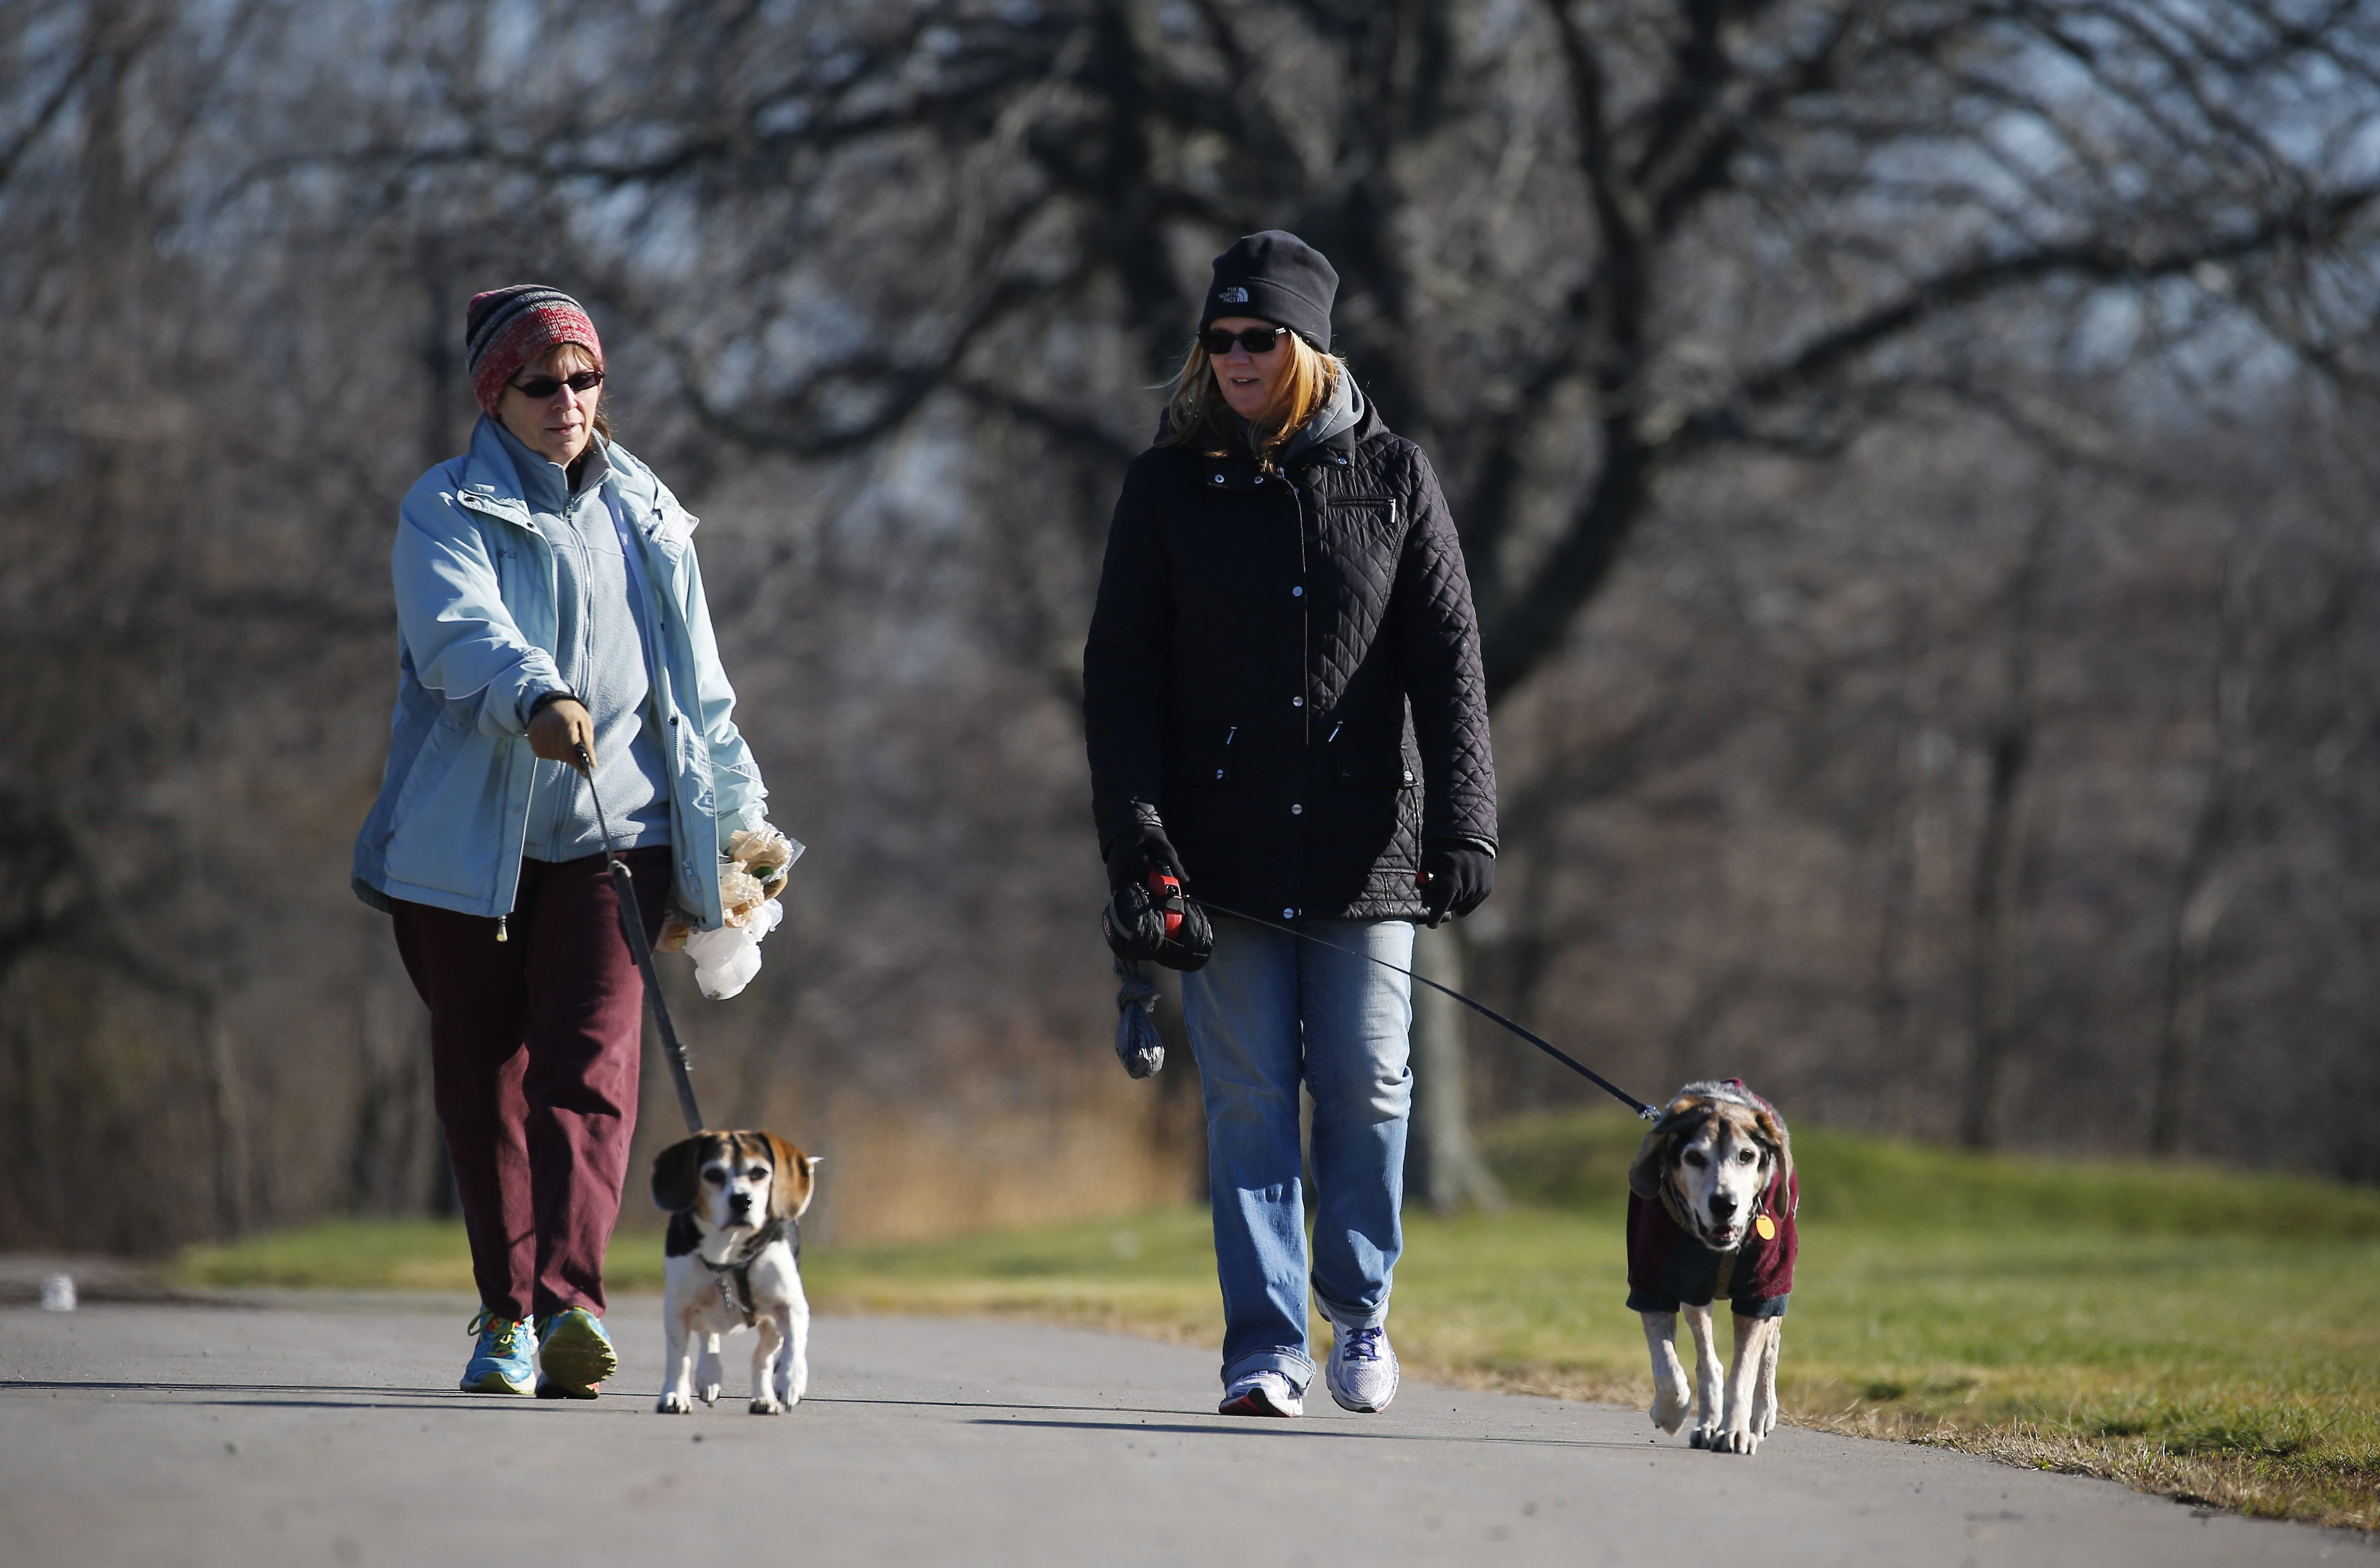 With the sun shining and temperatures in the 40s on Monday, Margaret Griffin, left, and Kelly Bebak walked their dogs without dodging the elements. The weather forecast for the upcoming weekend calls for temps in 40s and low 50s and no snow.    (Mark Mulville/Buffalo News)